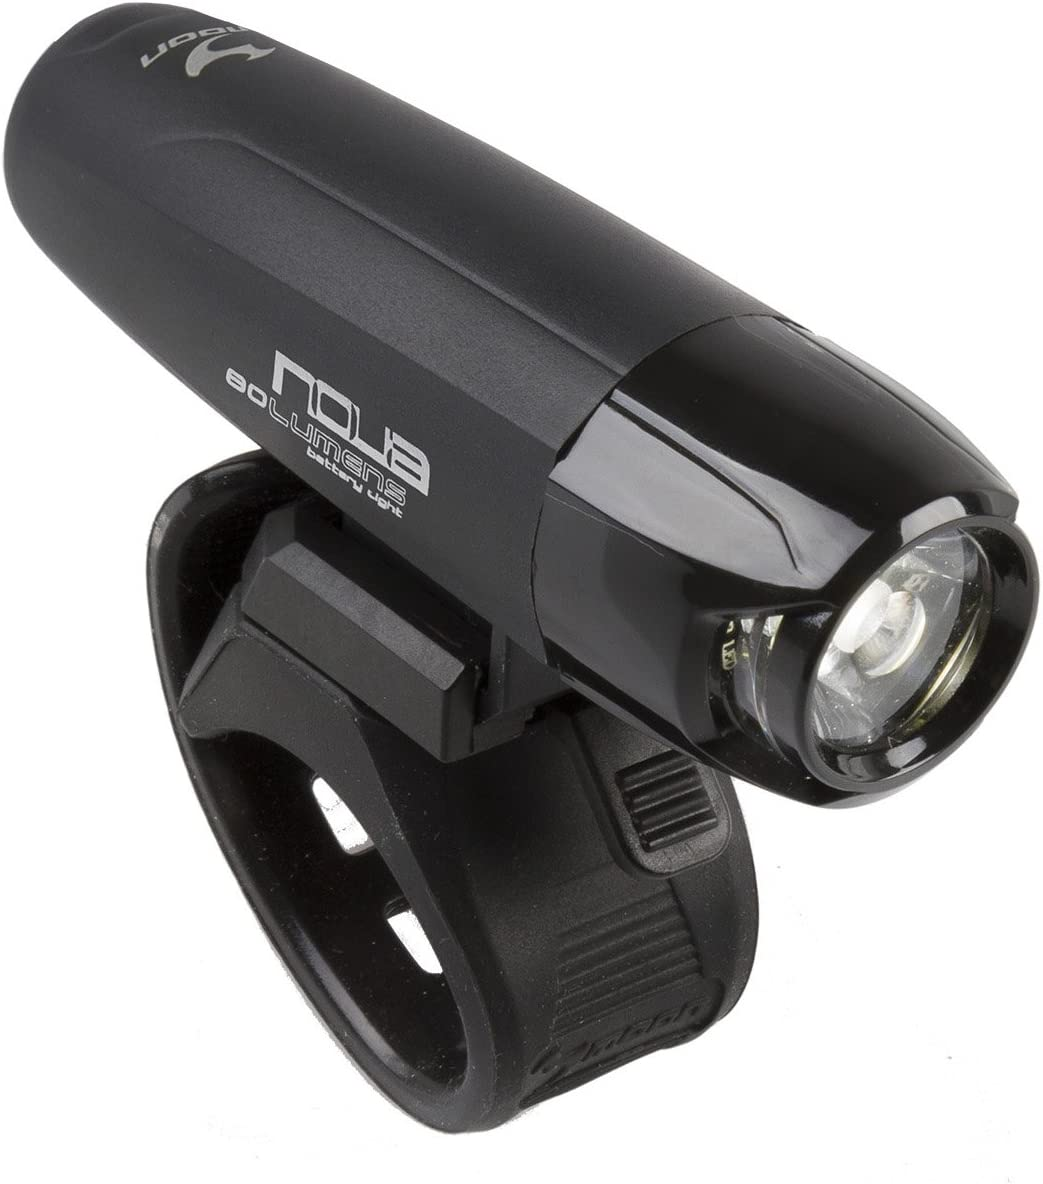 Moon Sports Bicycle Headlights and Taillights Adapters Mounting Cheap High order bargain